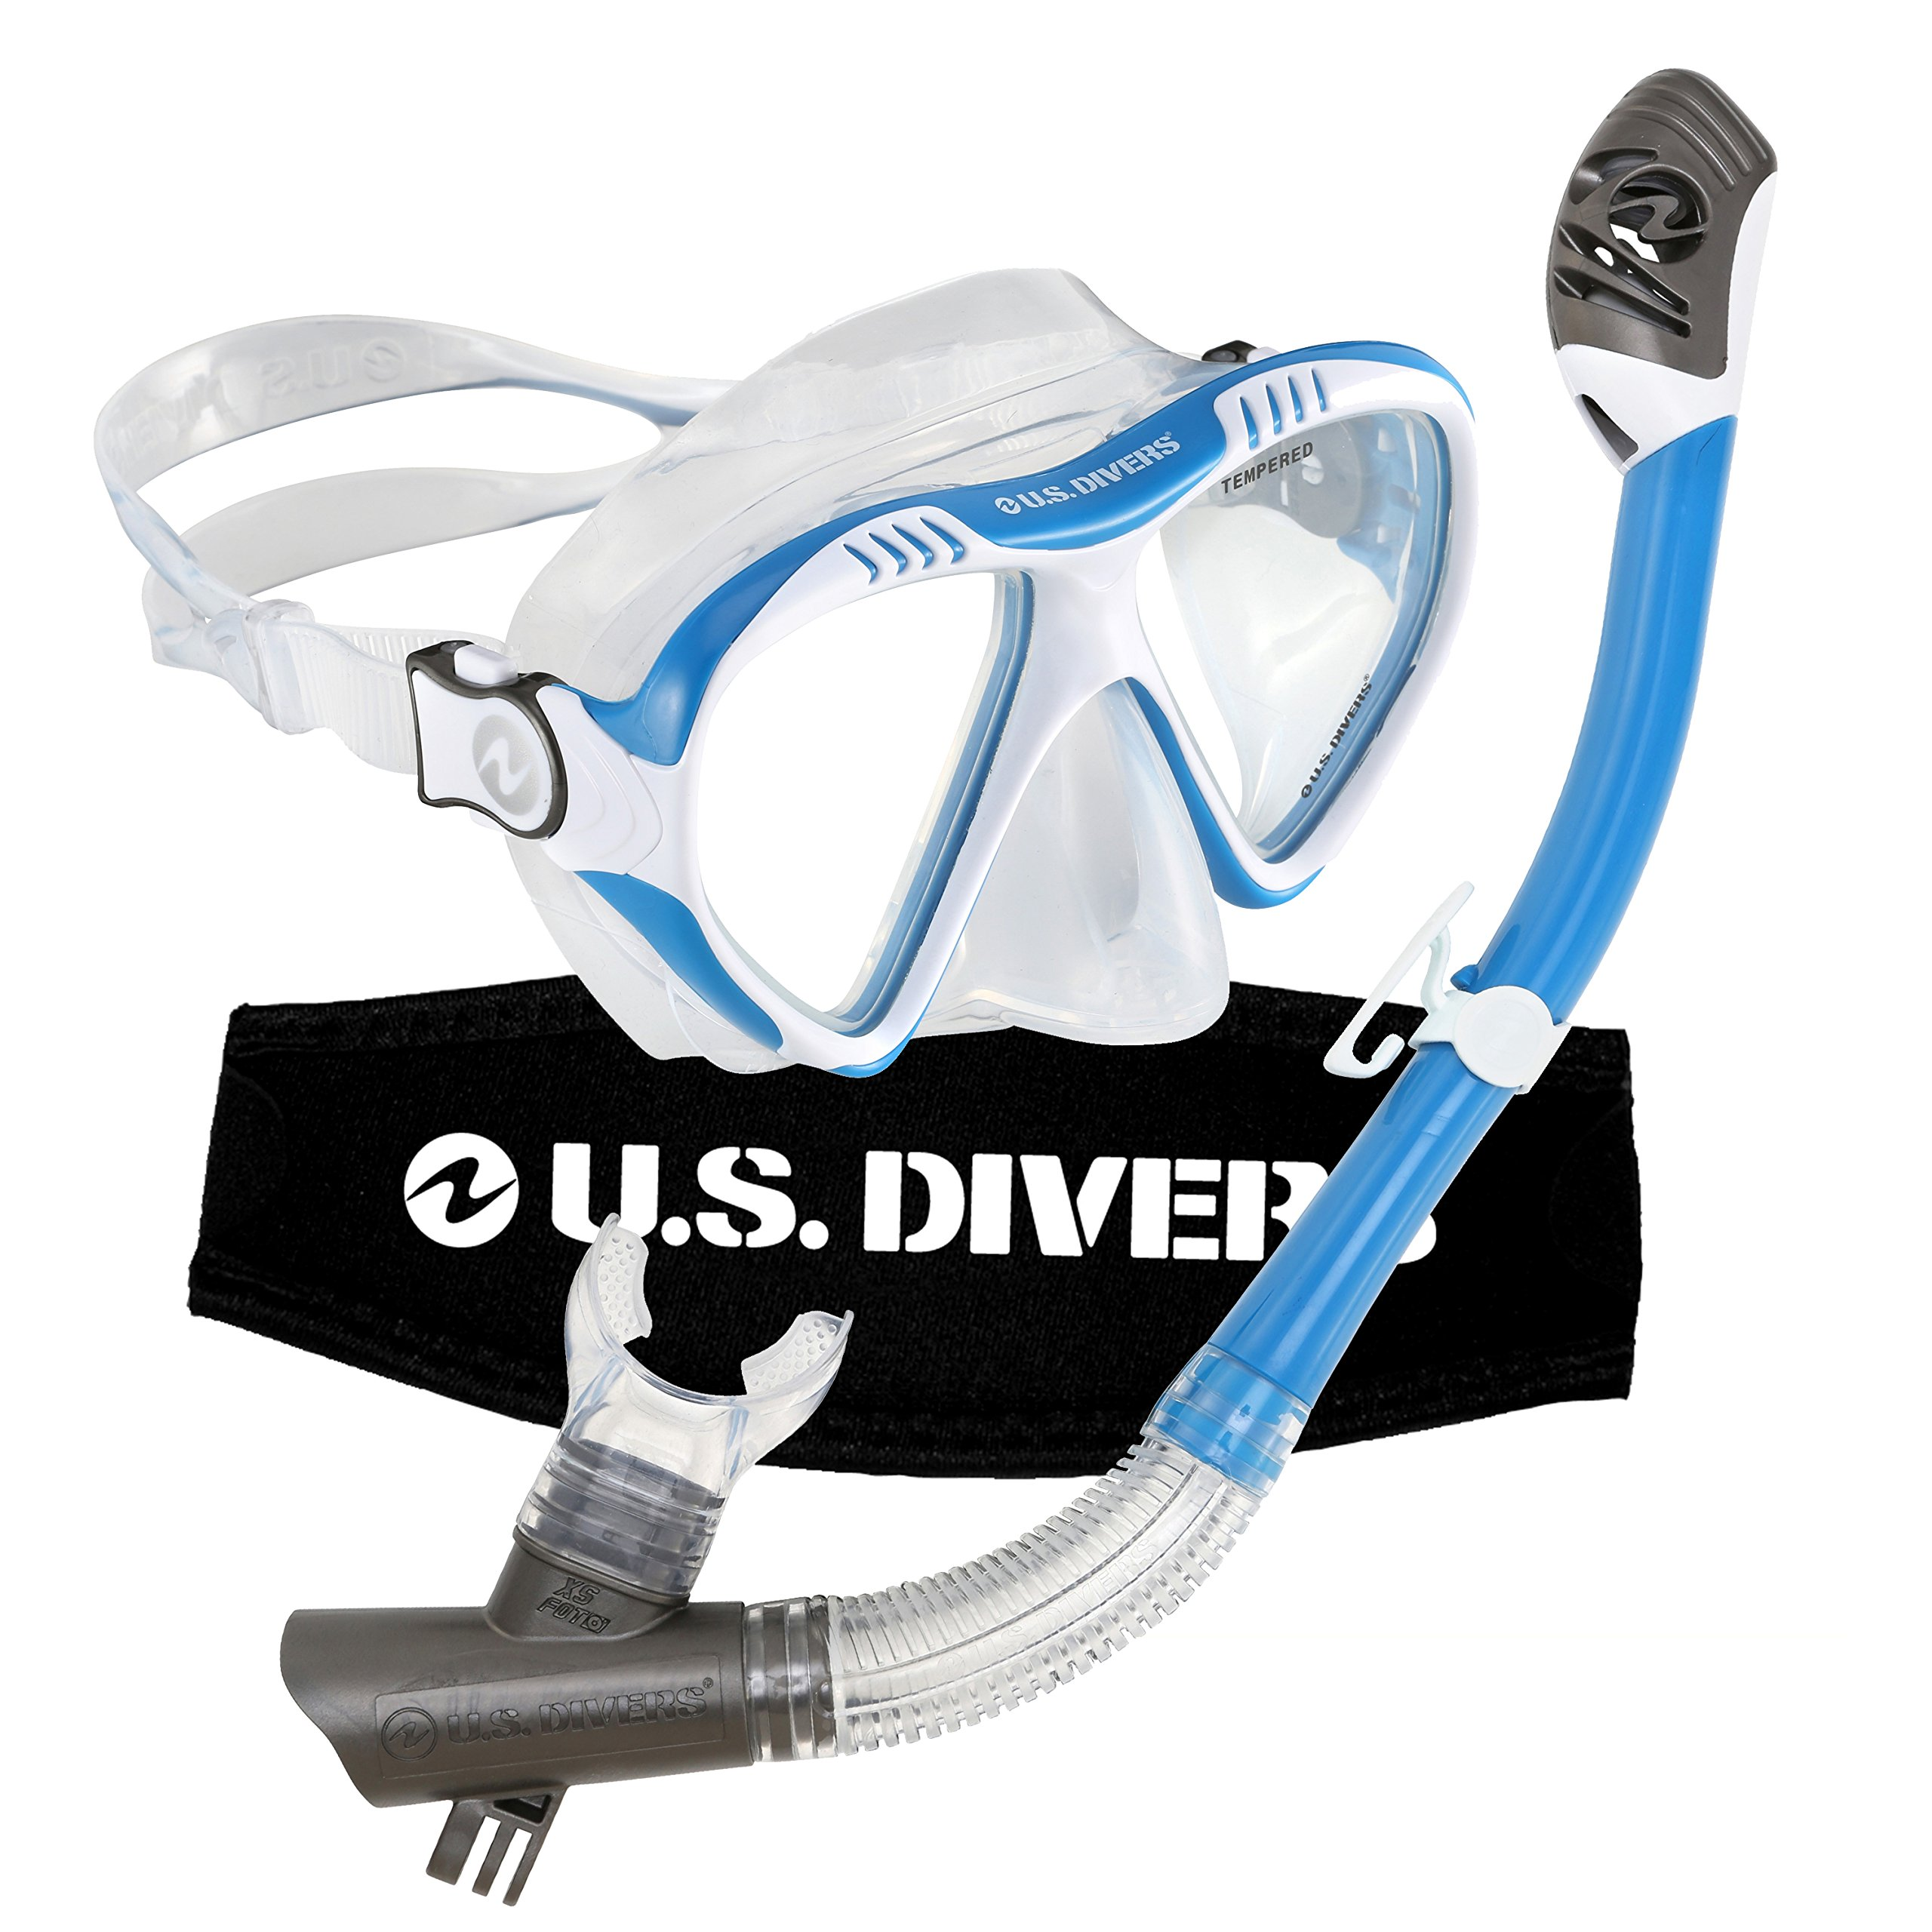 US Divers Magellan LX Dry Snorkeling Set Blue/white Compatible with GoPro by U.S. Divers